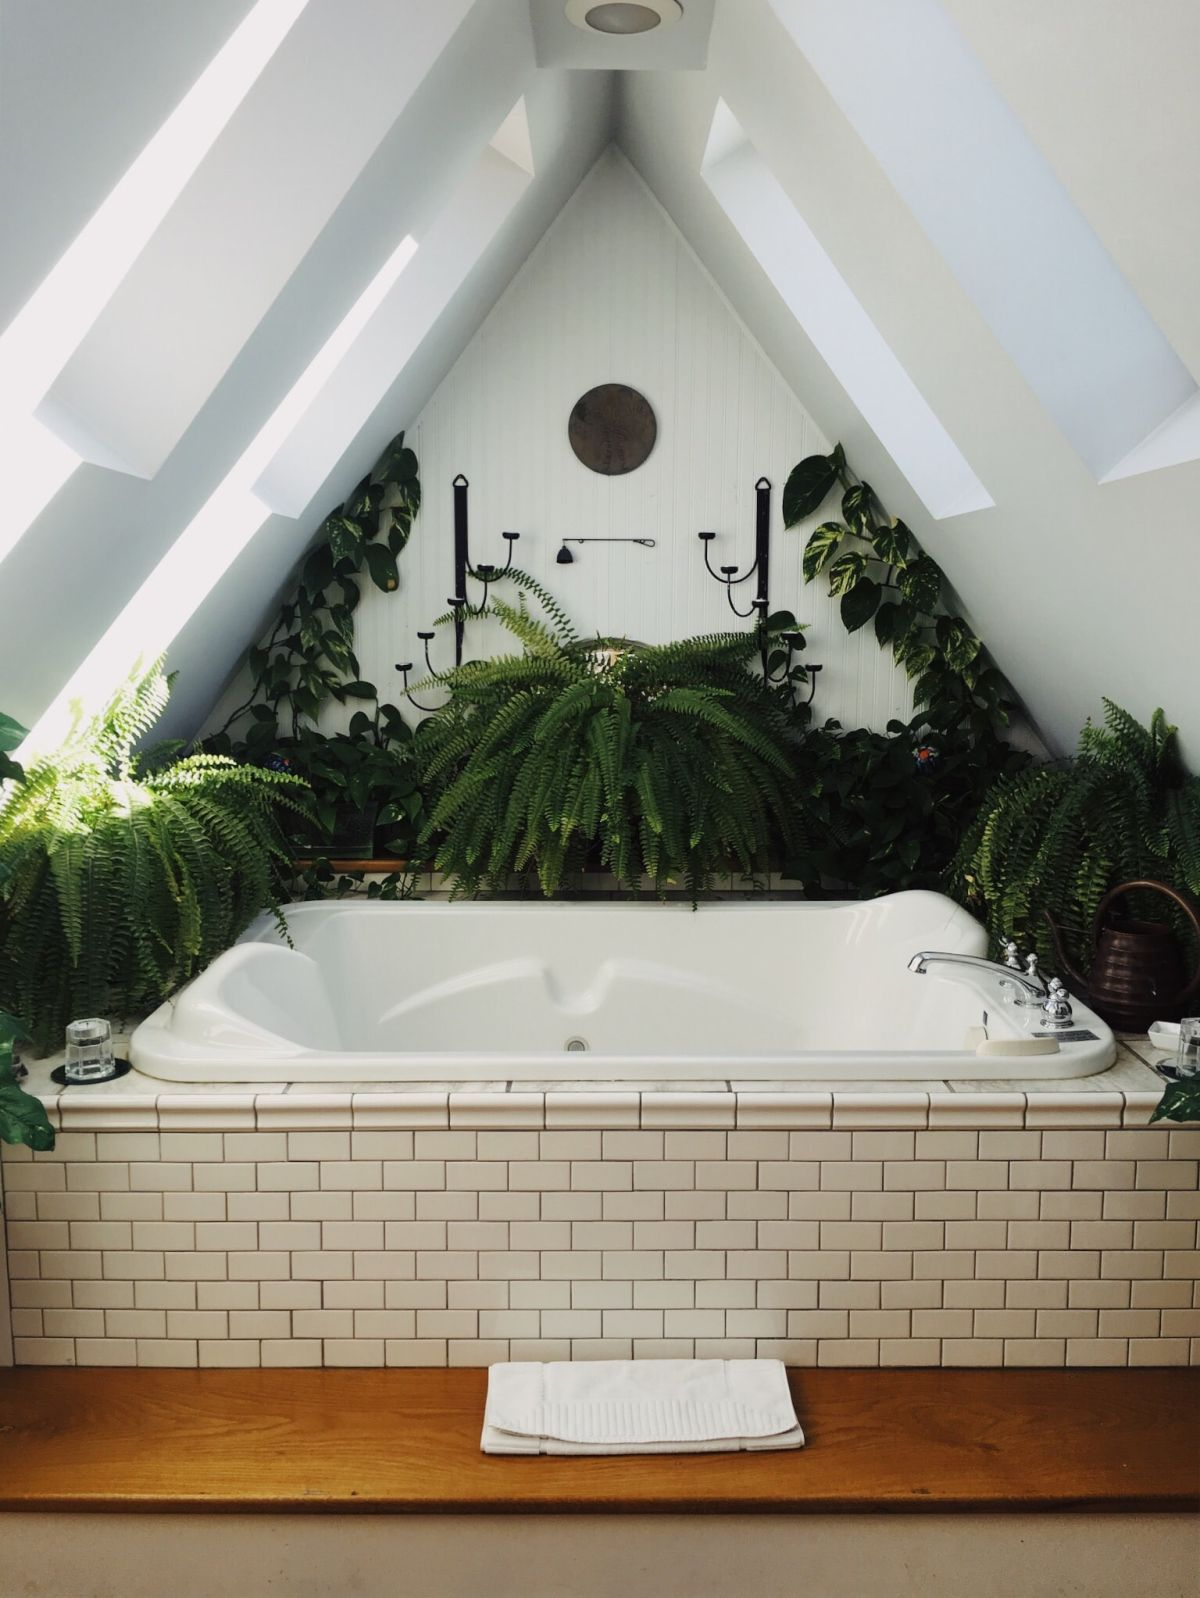 10 best bathroom plants – low light, humidity-loving greenery for your space